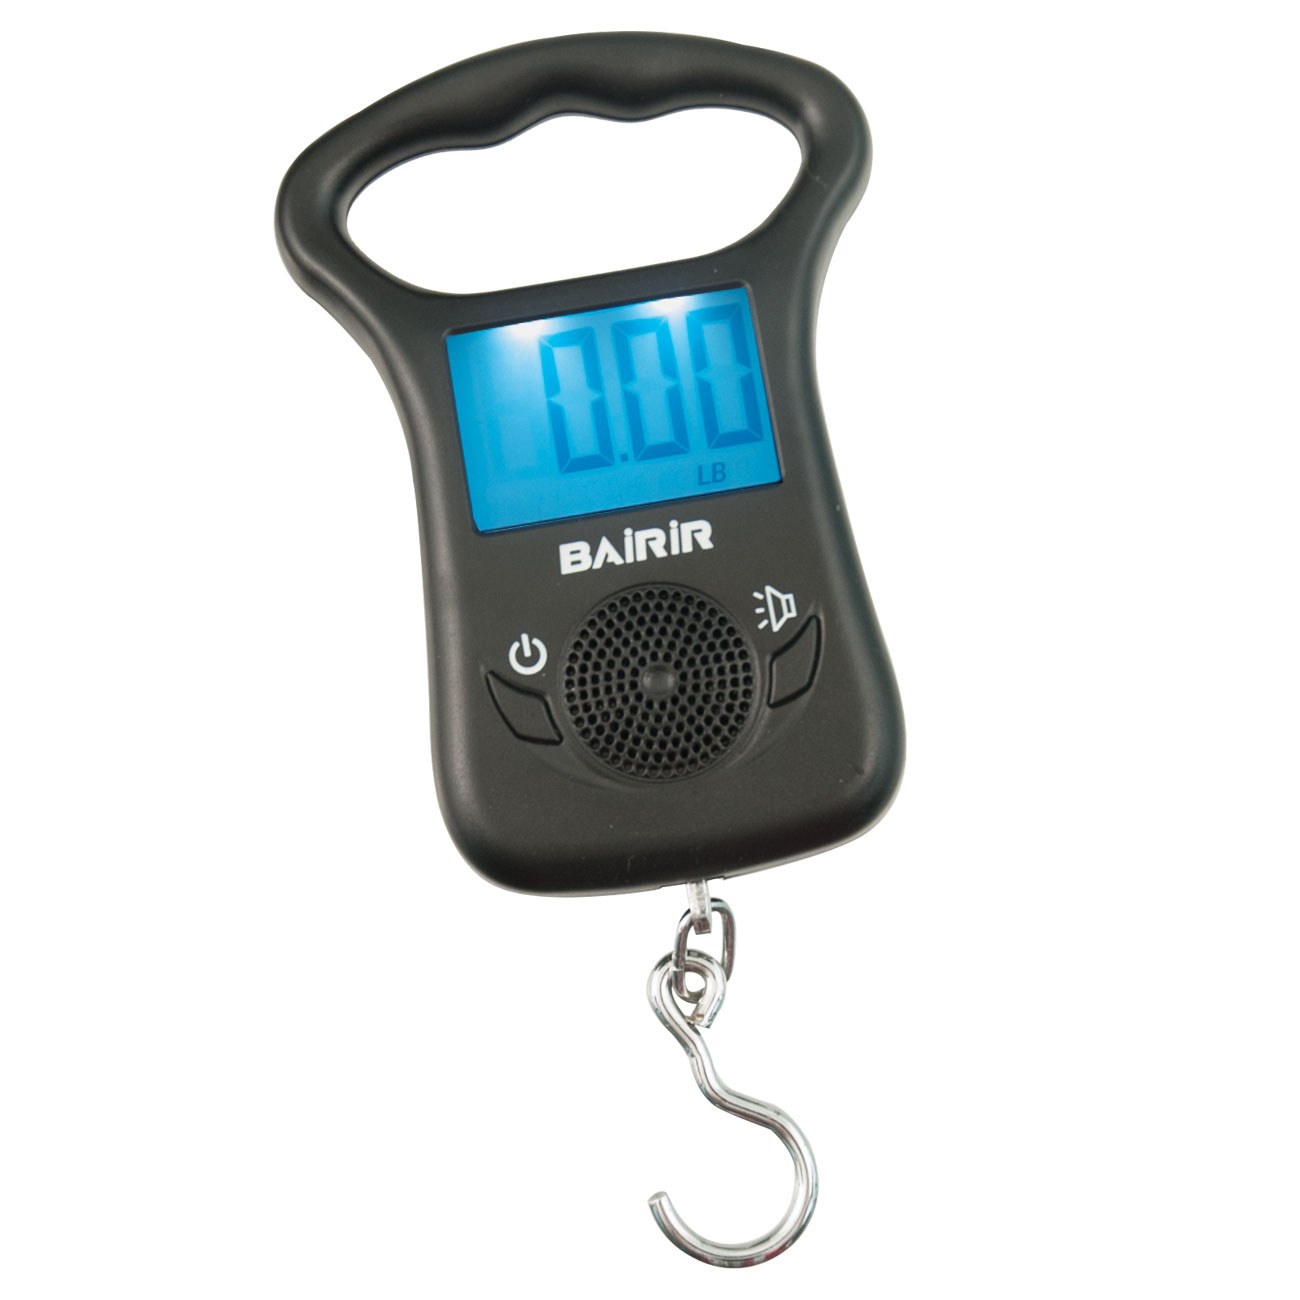 Digital Talking Portable Luggage Scale - click to view larger image